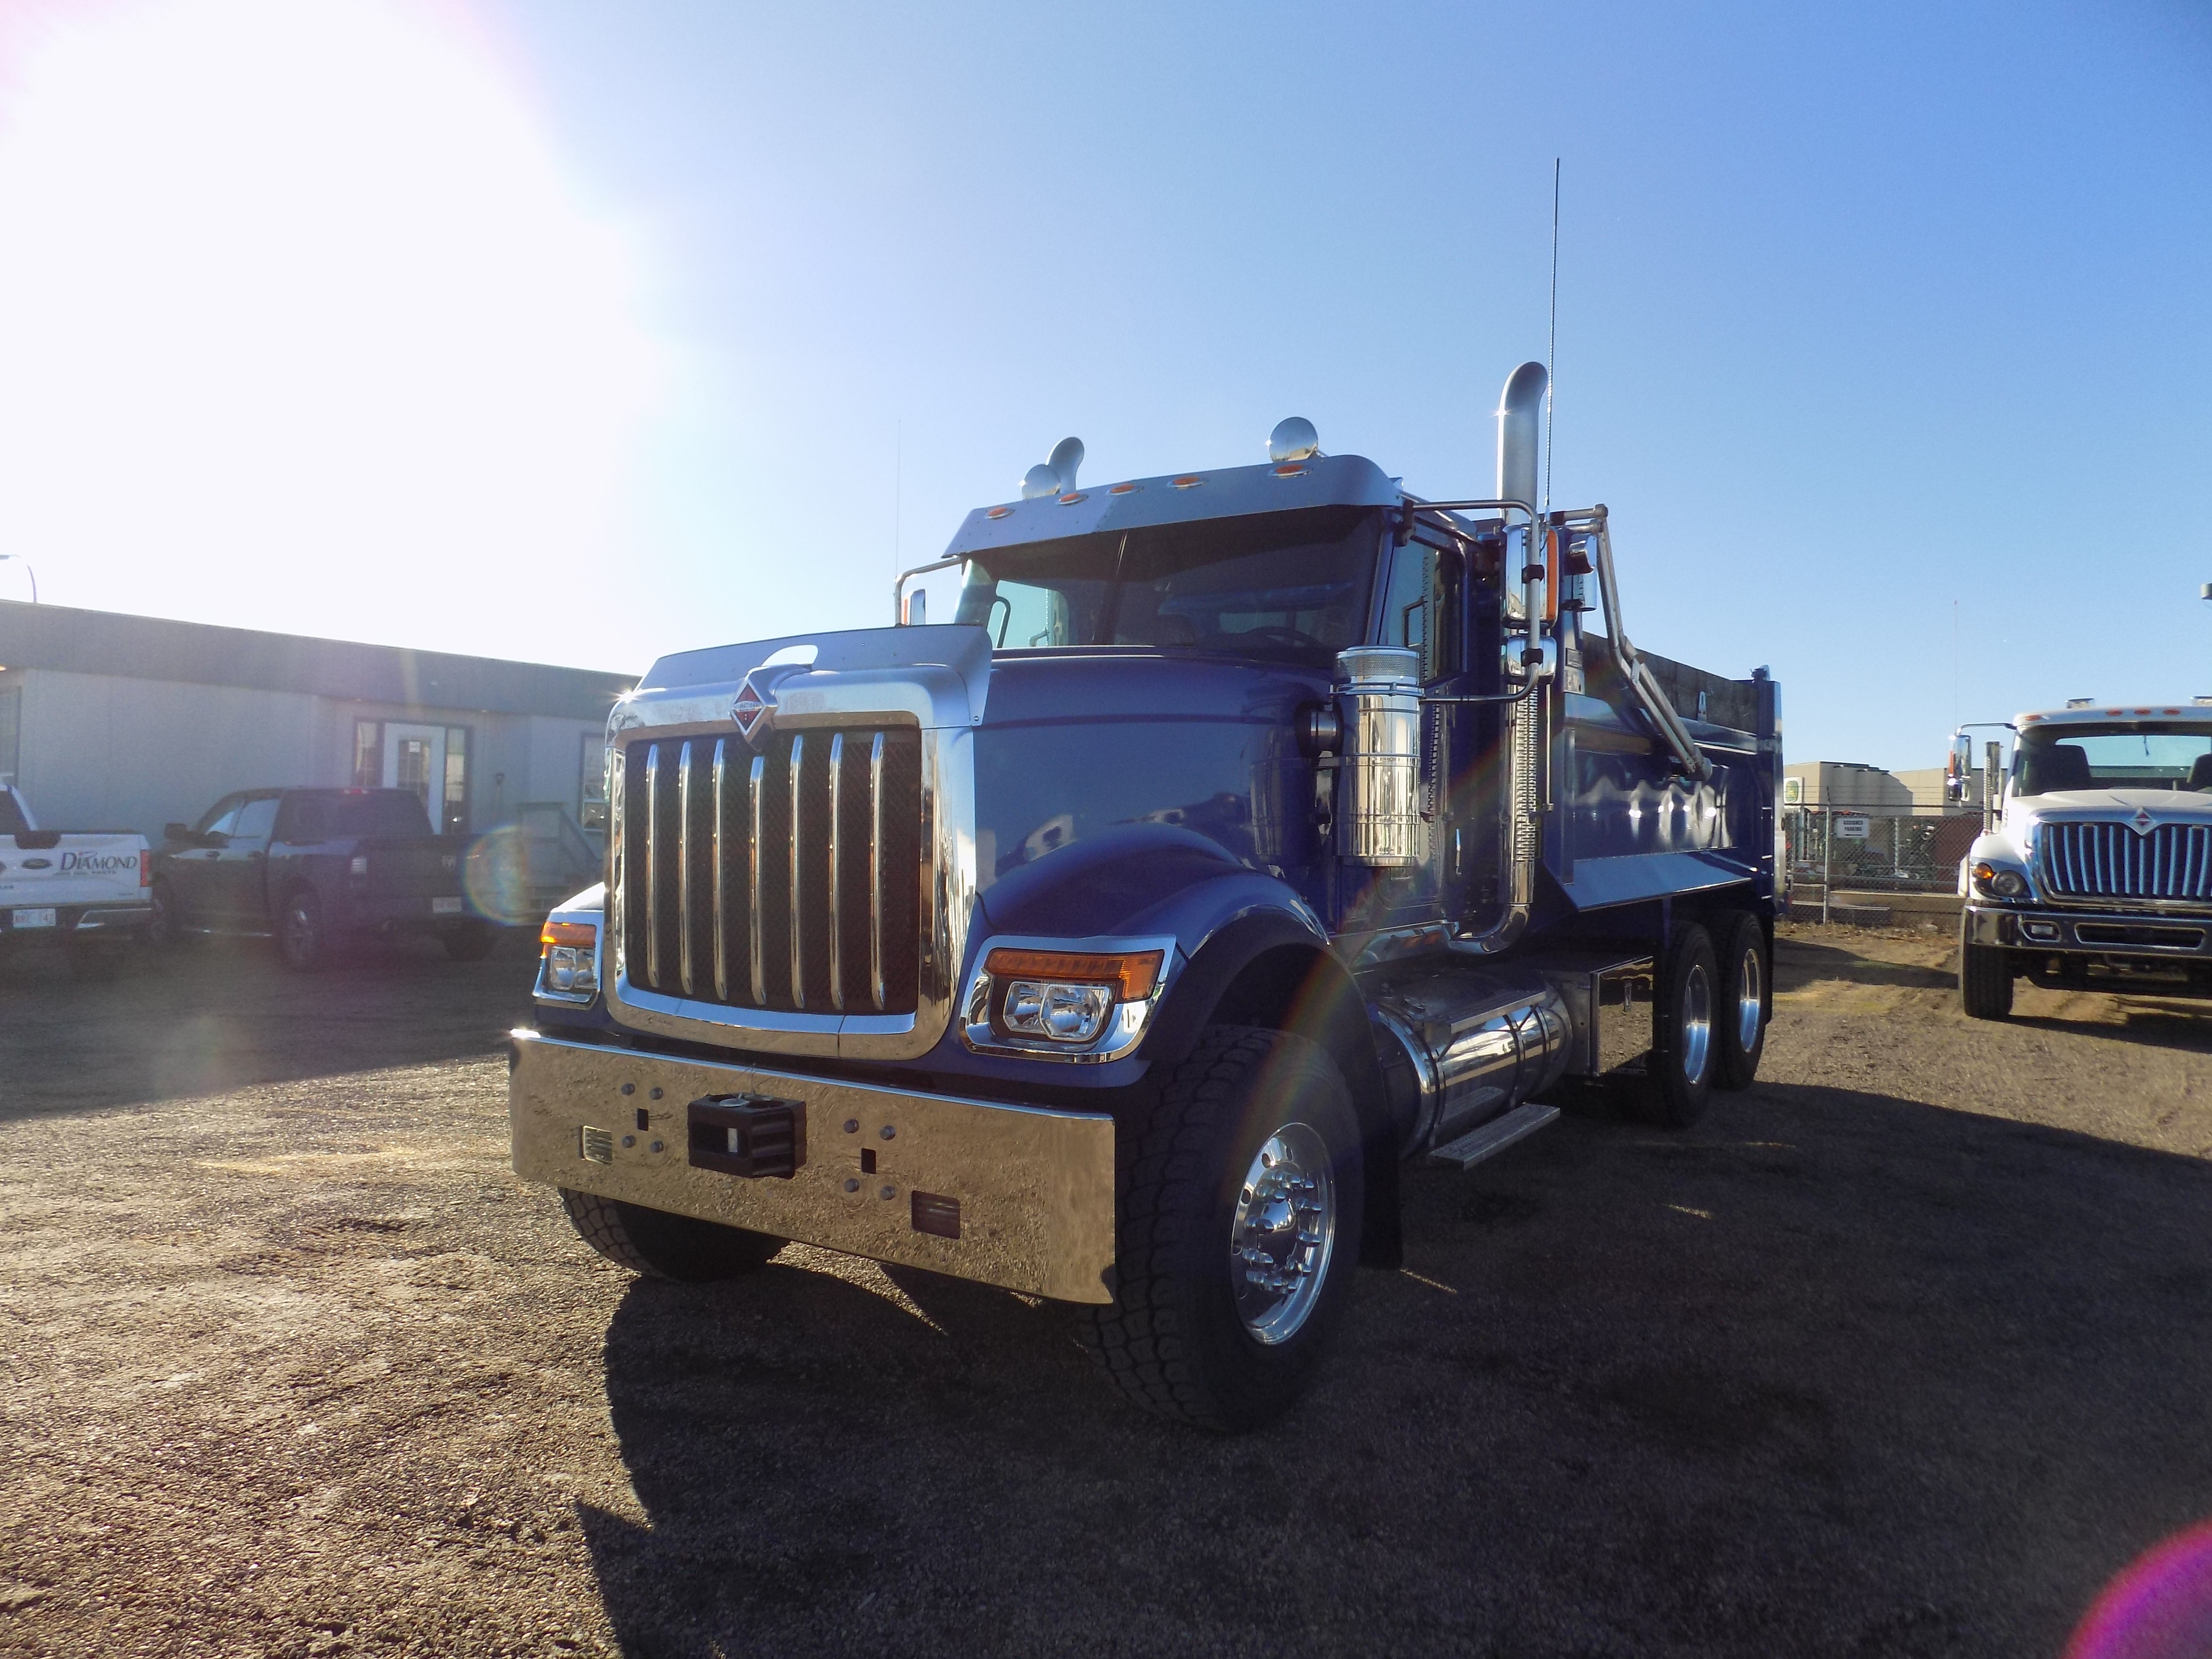 Bibeau 15 Bfls On International Hx520 6x4 Commercial